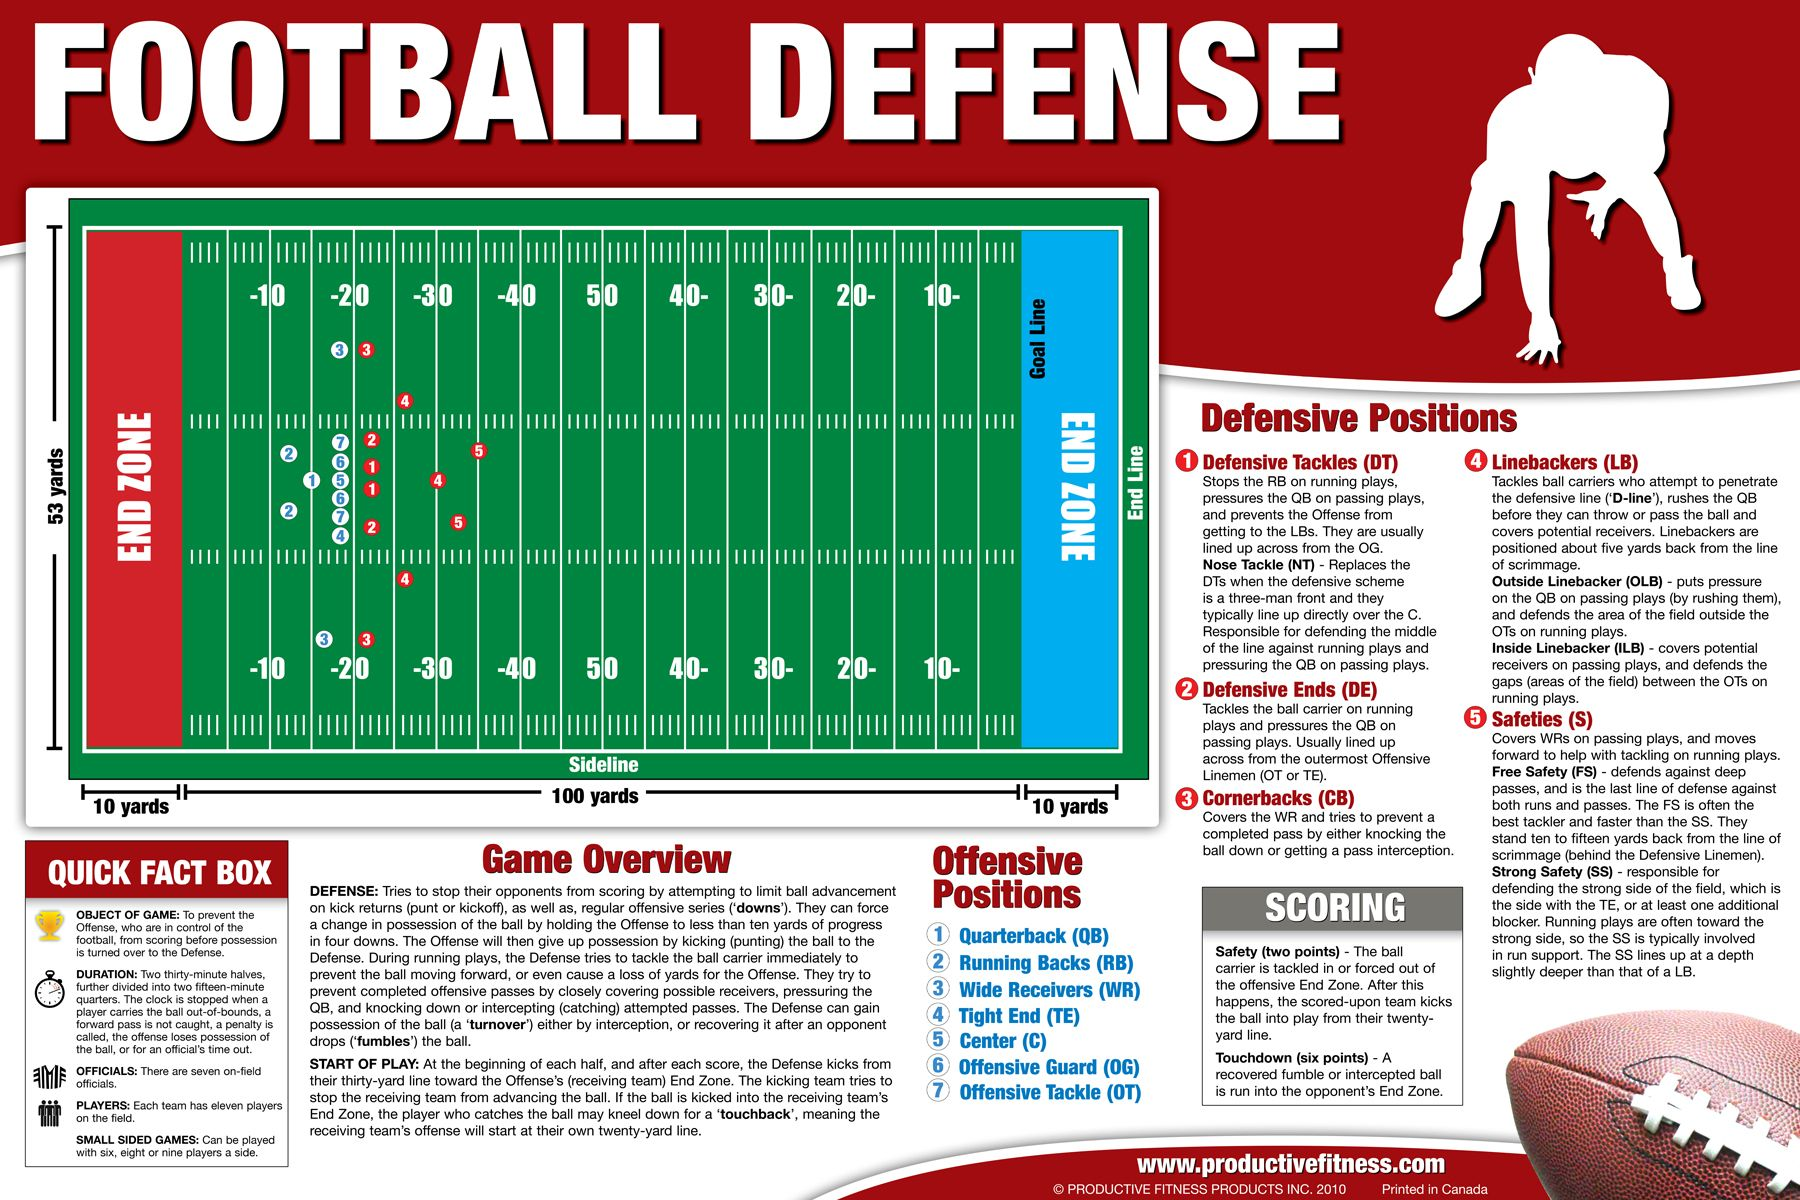 Football Defense Poster/Chart - $24.95 Our football defense overview poster is perfect to gain an easier understanding of the sport by clearly displaying player positions, rules of the game and facts on how to play this popular sport. Perfect for high schools, sports teams and enthusiasts. #football #defense #poster #learn #sports #schools #teams